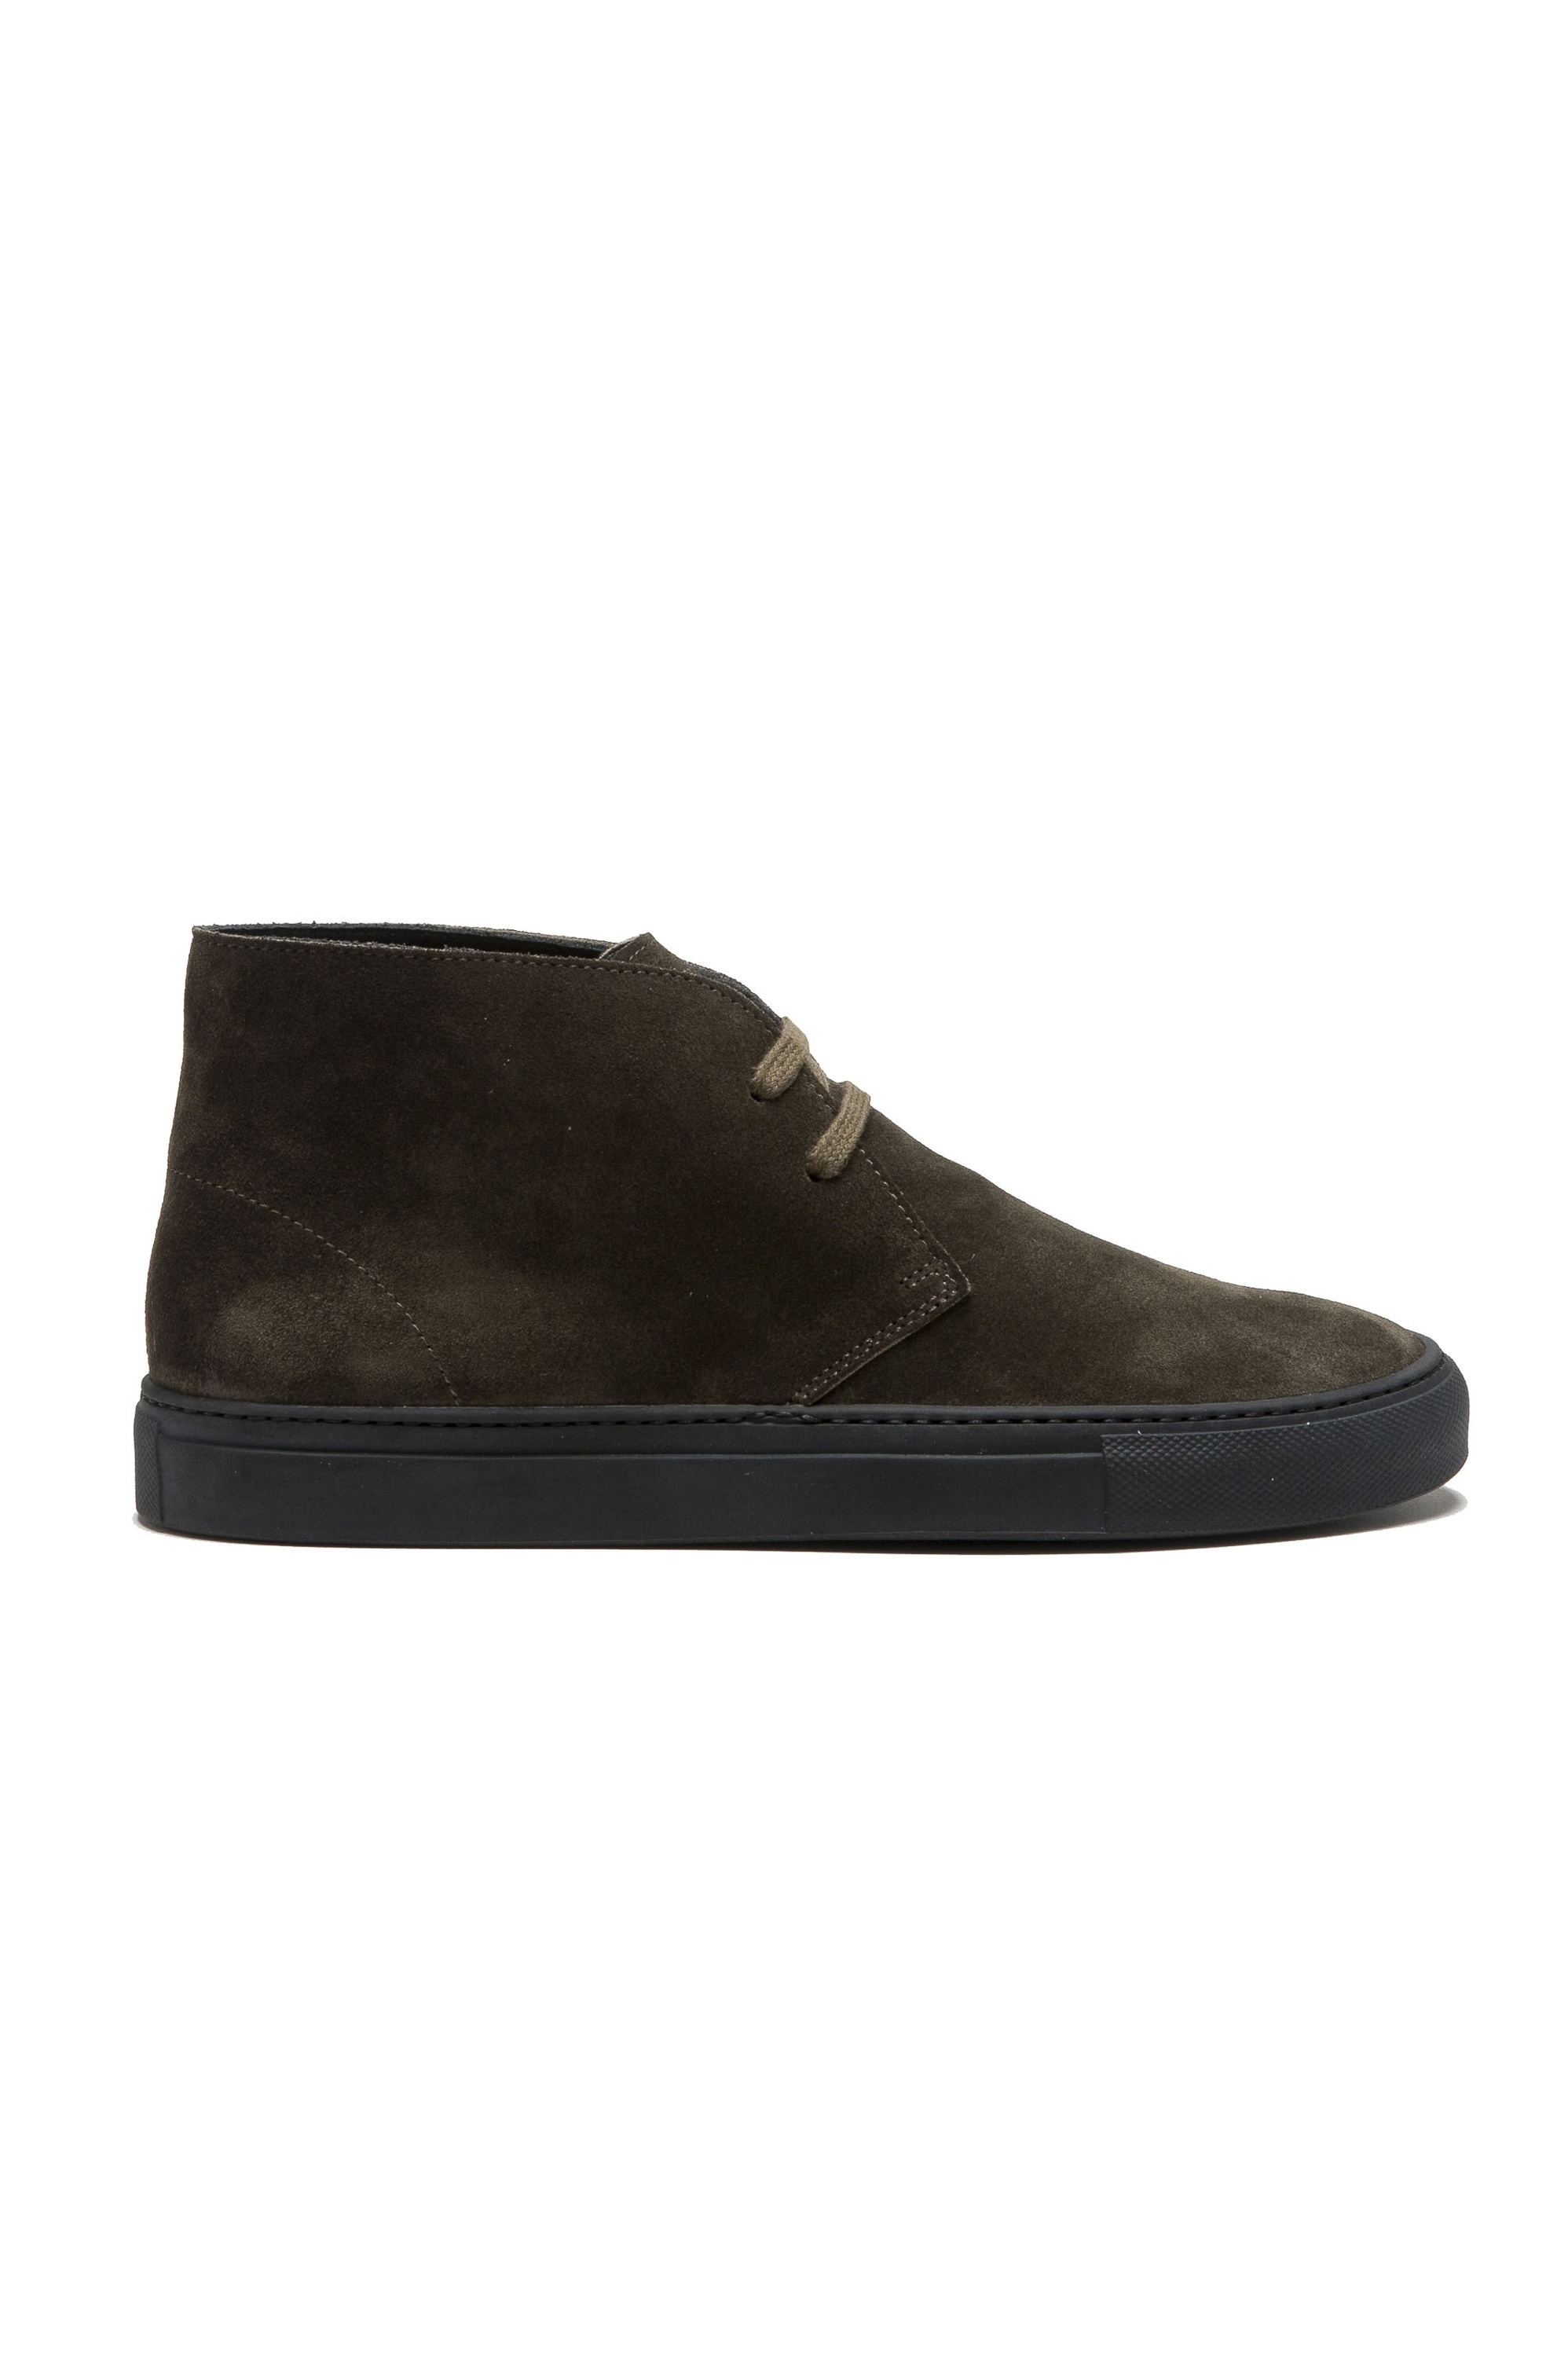 SBU 01519 Chukka boots in green suede calfskin leather 01